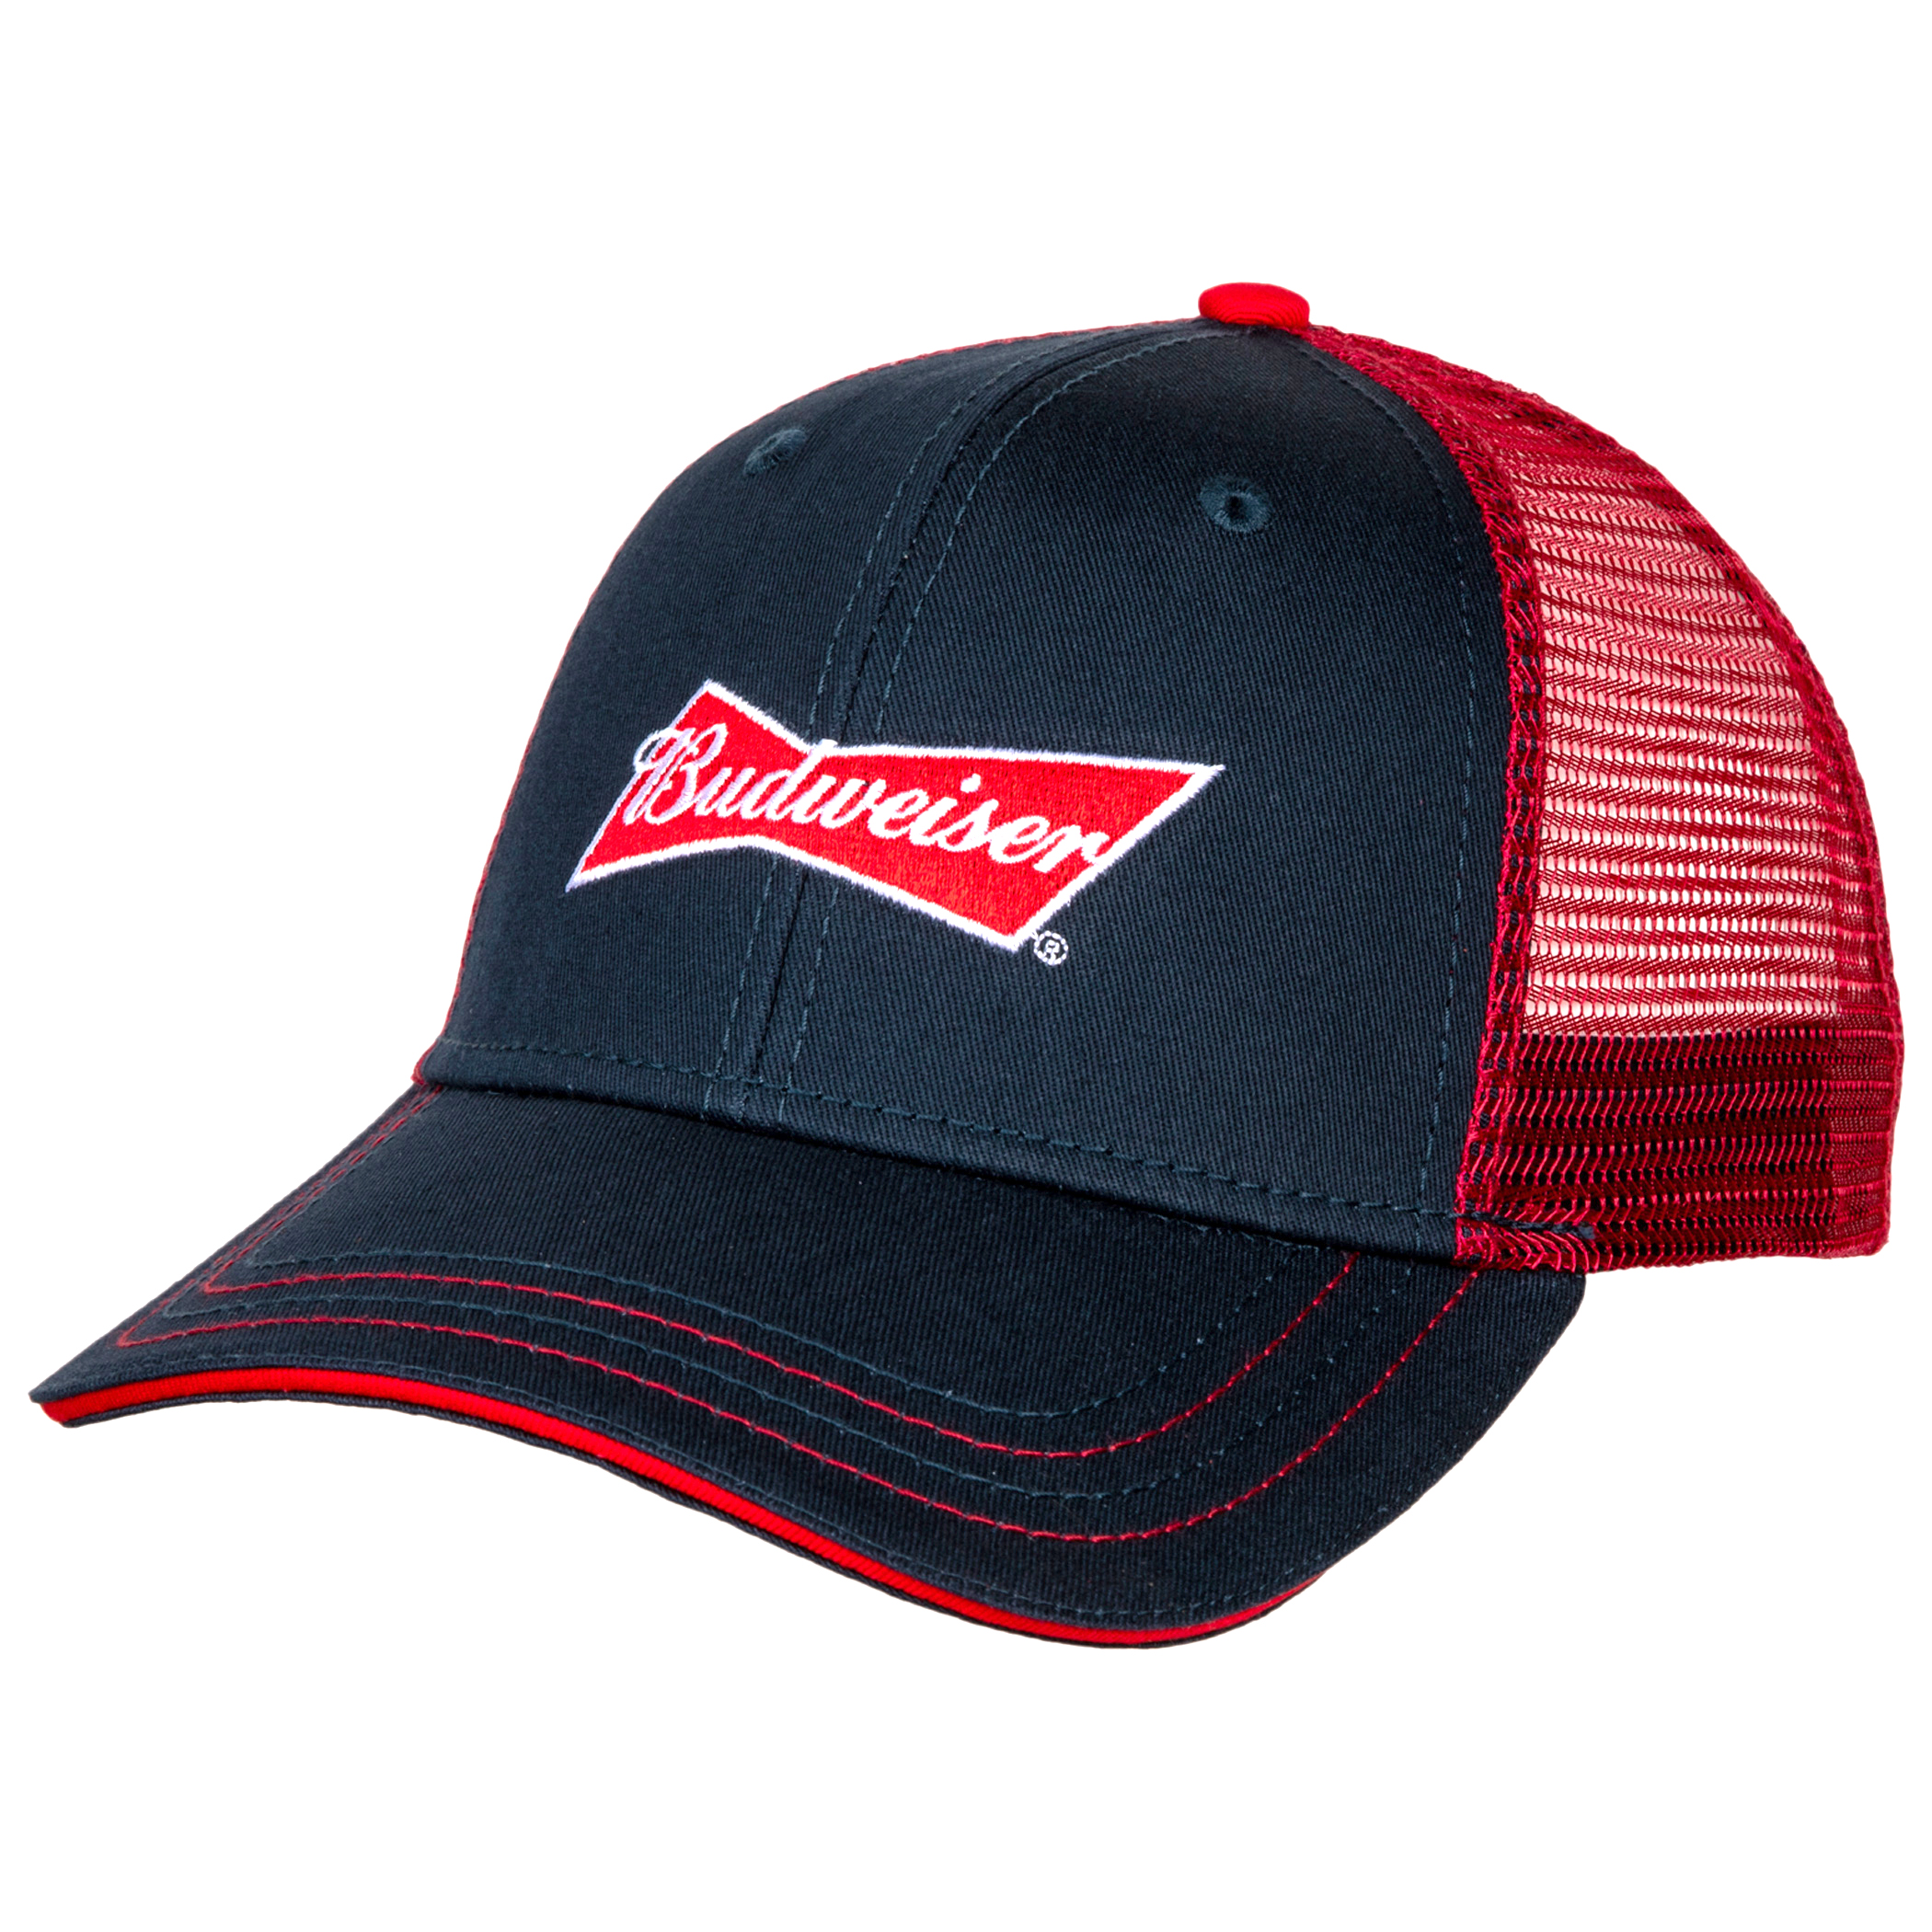 Budweiser Logo Adjustable Snapback Trucker Hat